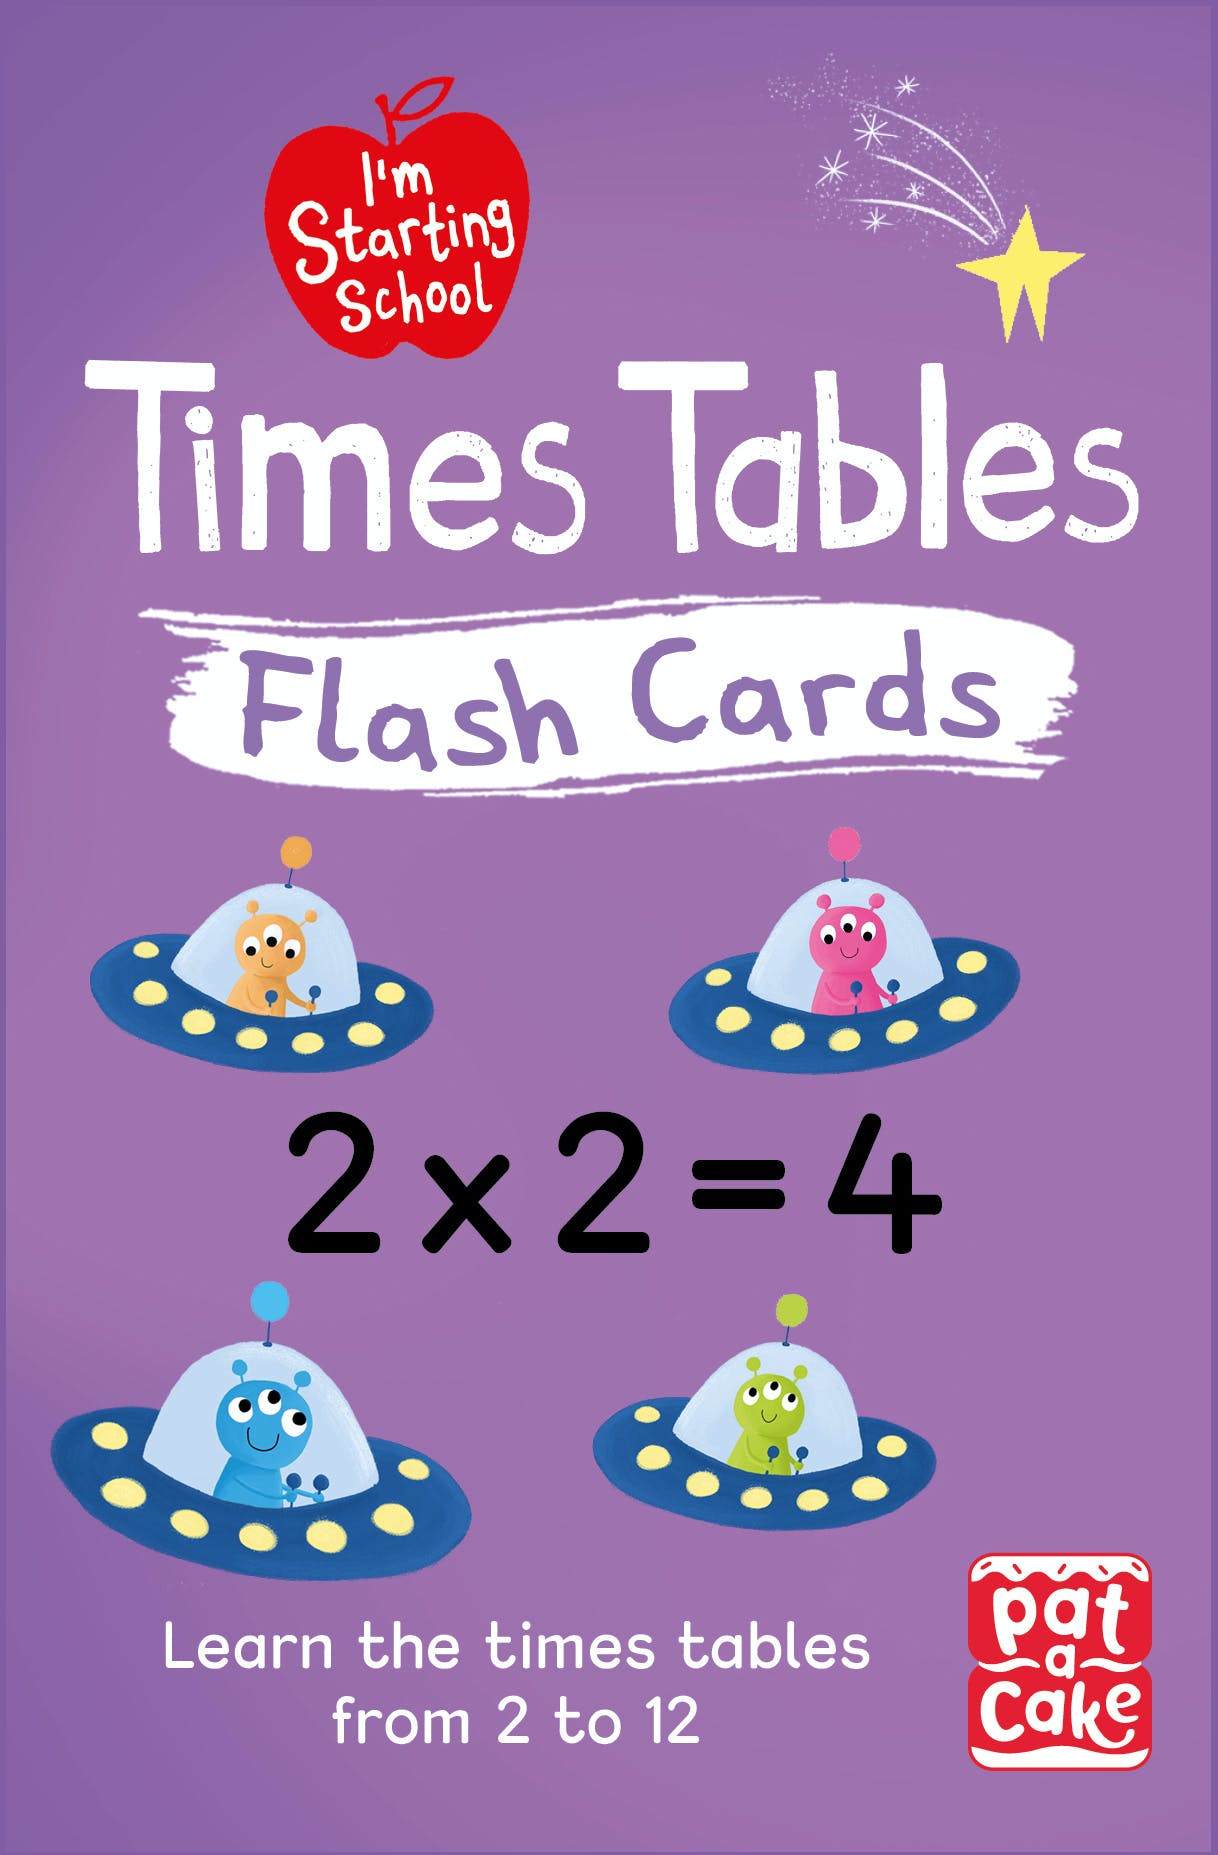 I'm Starting School: Times Tables Flash Cards from Pat-a-Cake